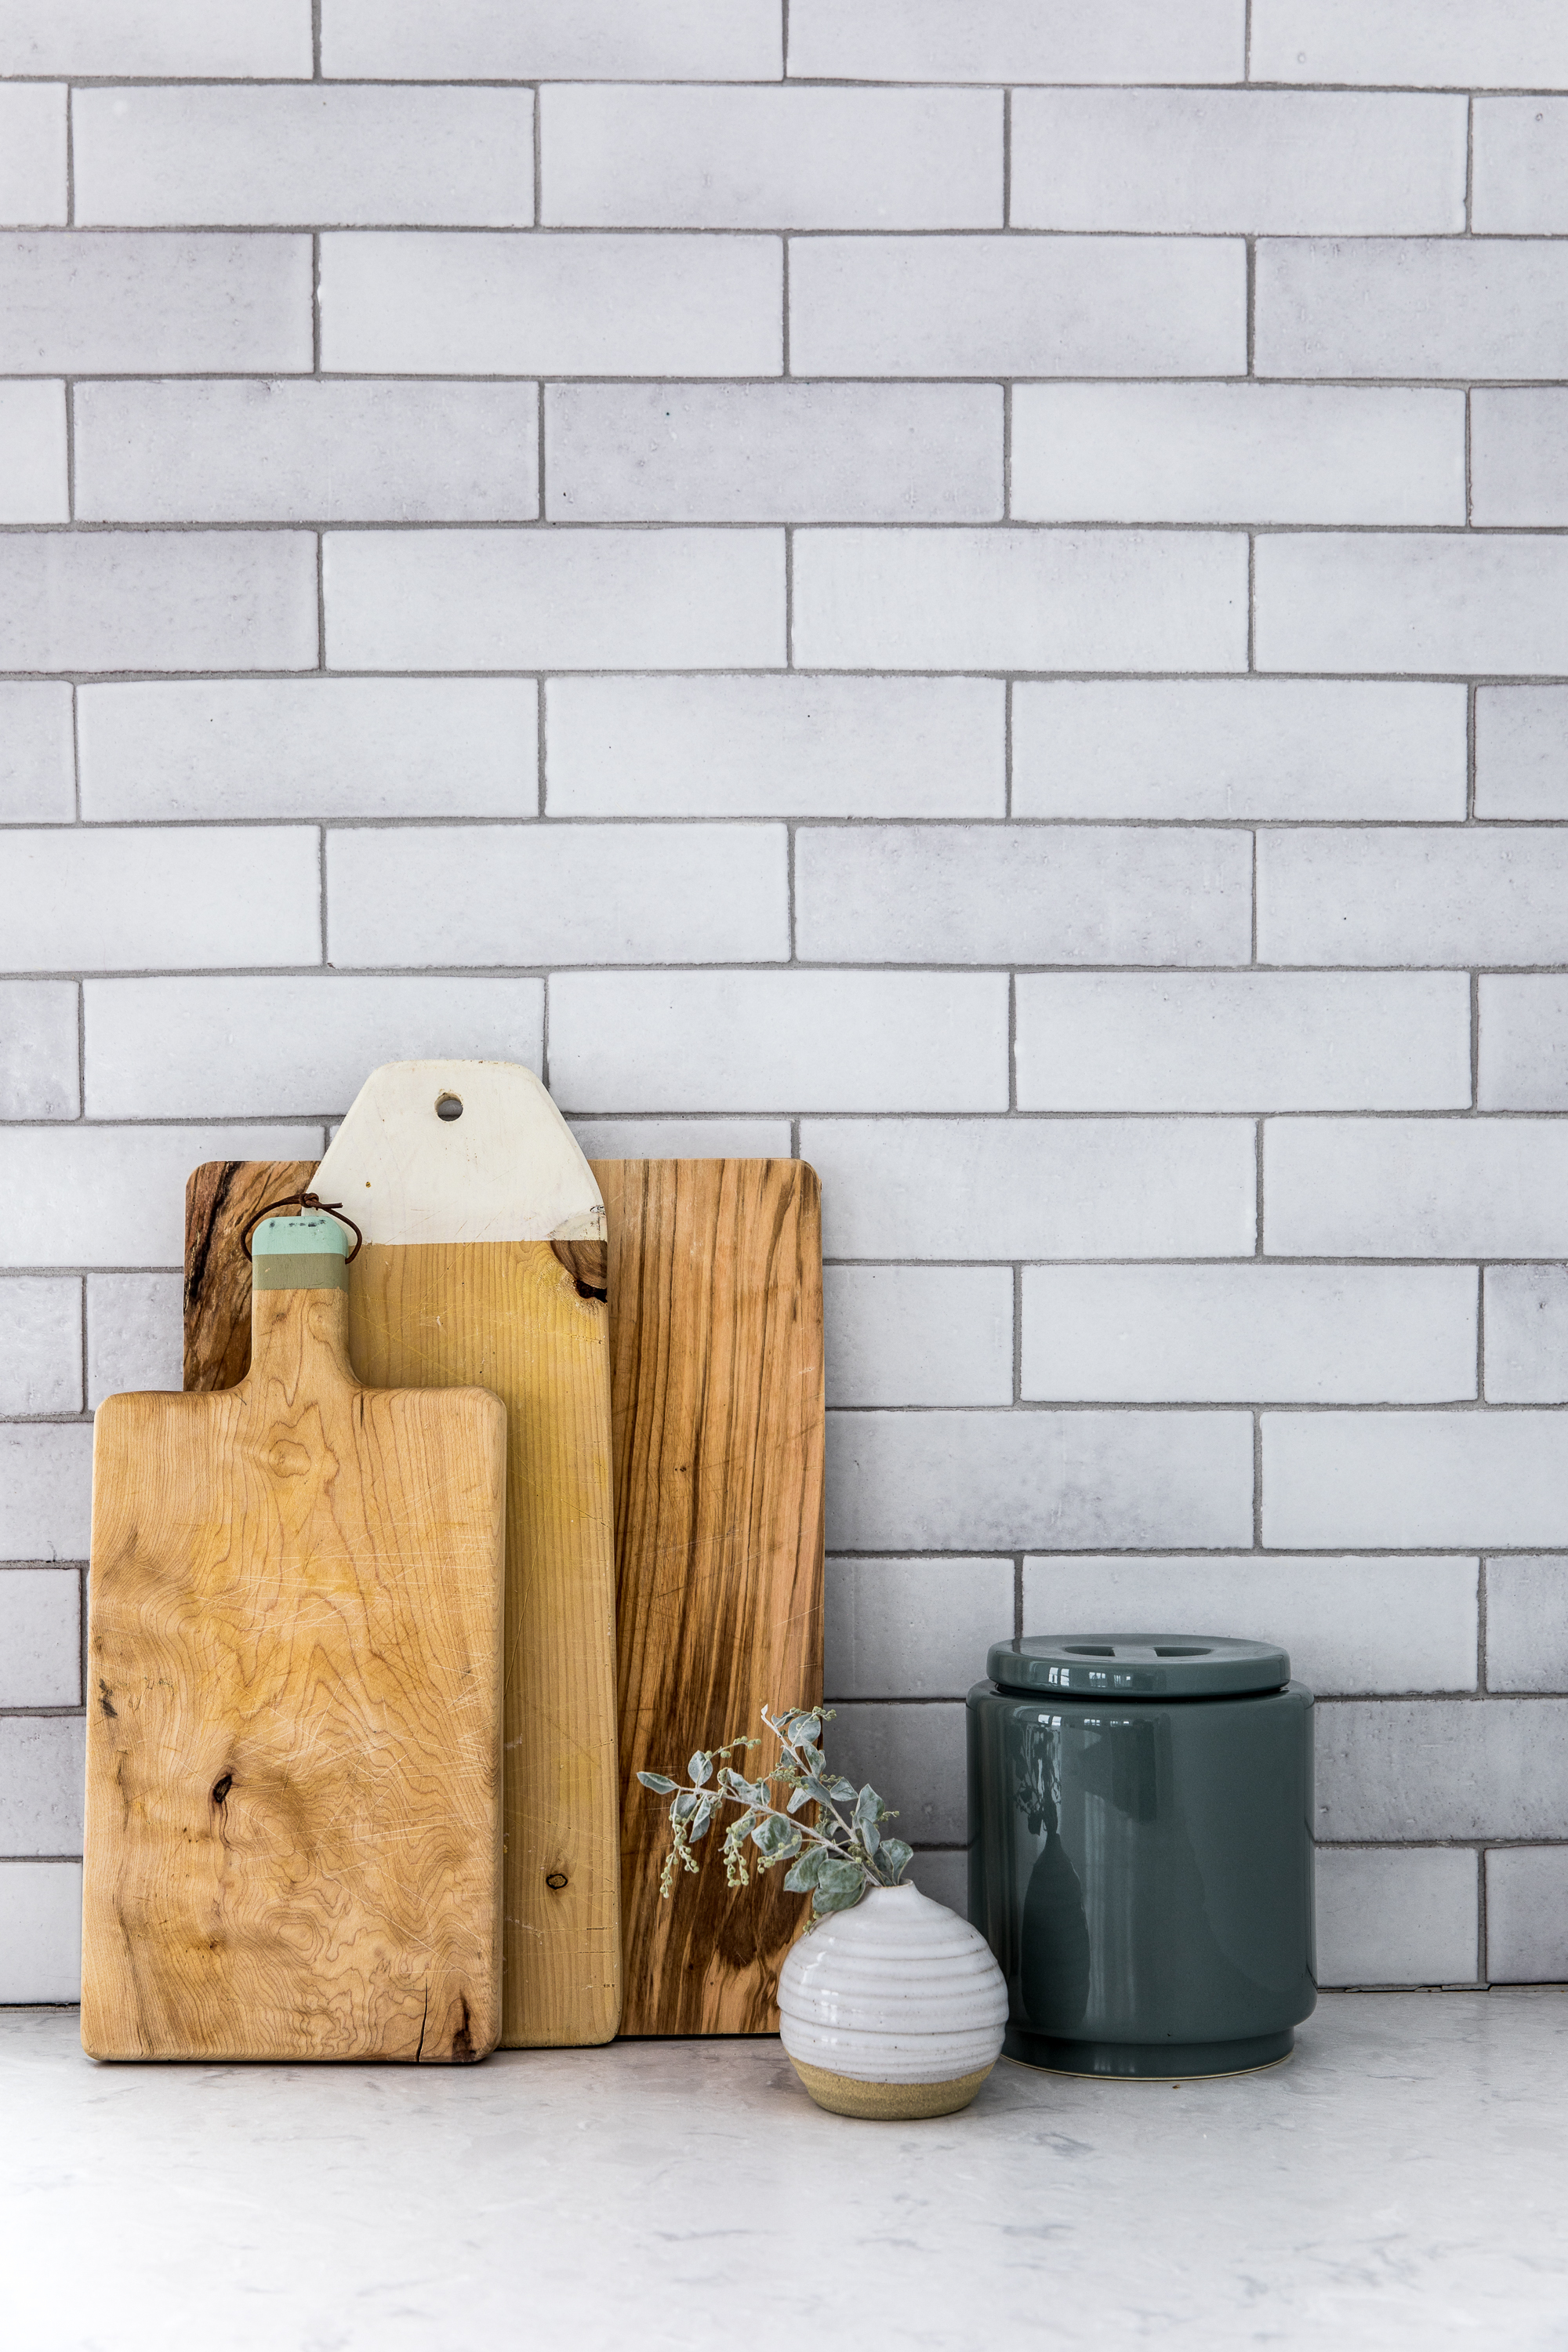 2018_Q1_image_residential_influencer_Fresh_Exchange_kitchen_backsplash_brick_cotton_detail_14_white_mountains.jpg?mtime=20181119104713#asset:426364